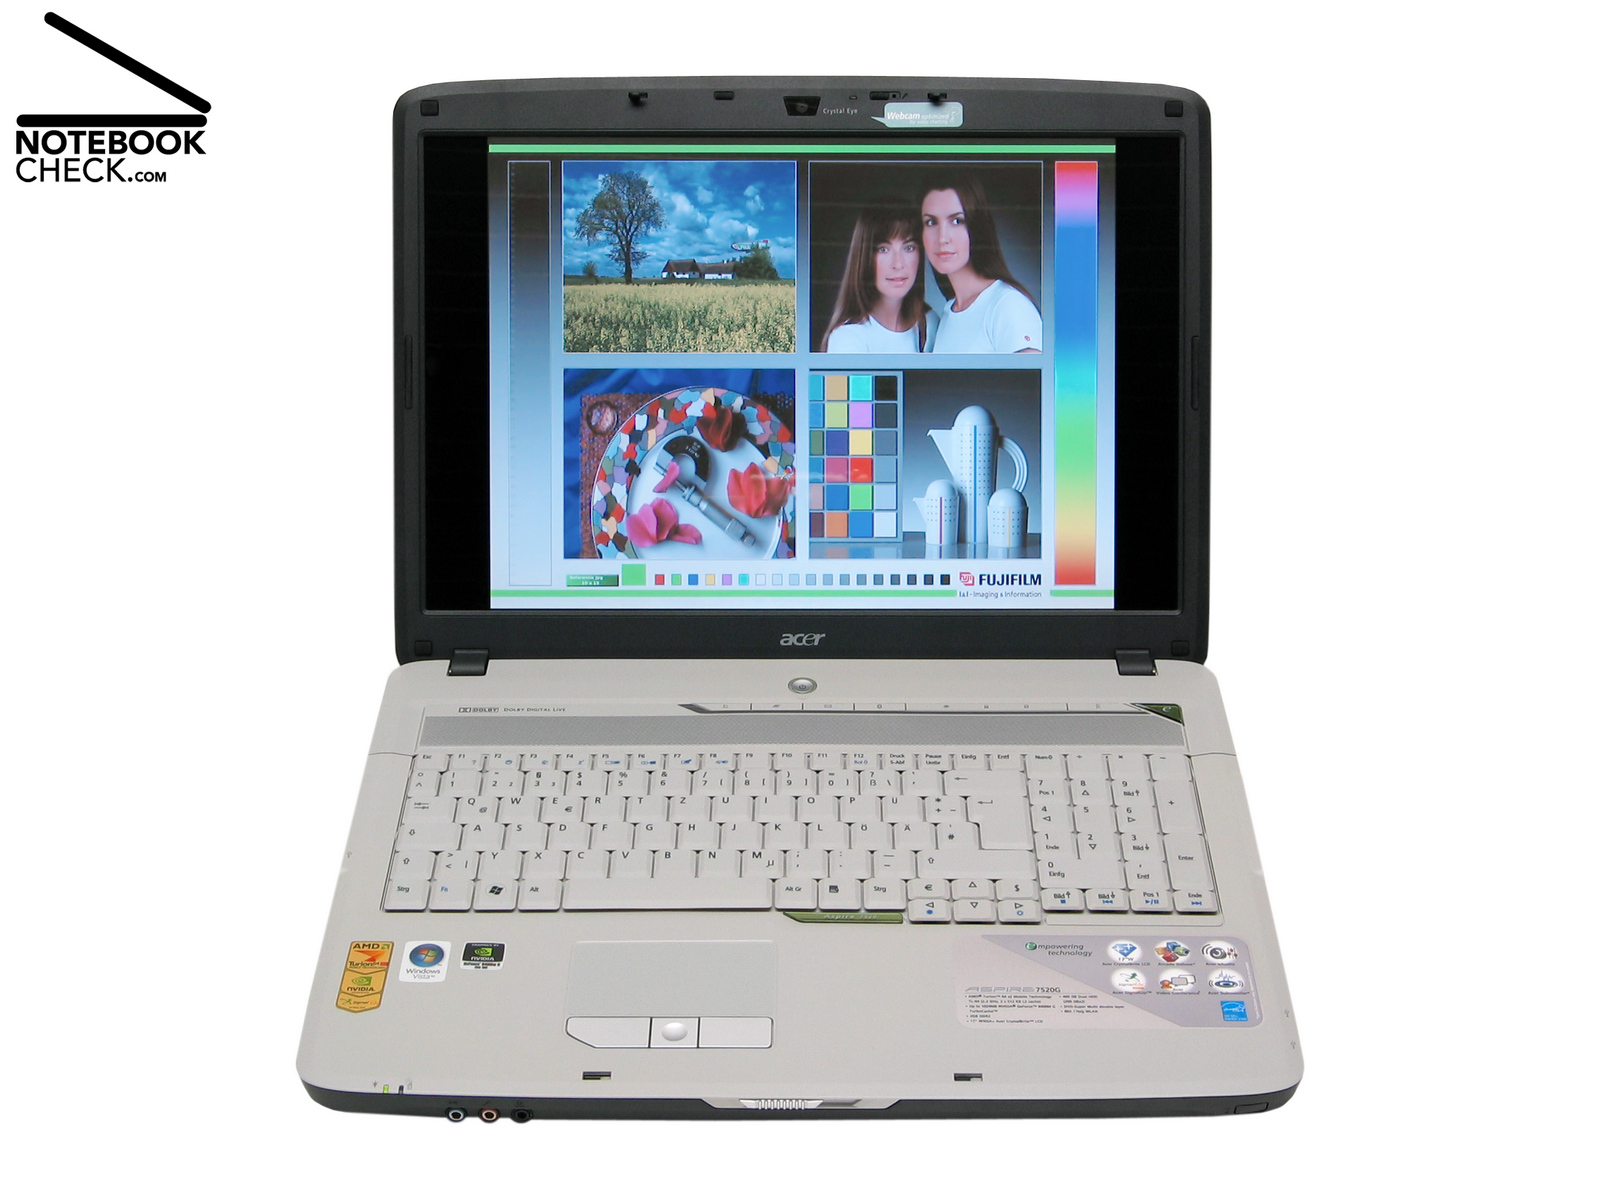 acer aspire Acer aspire laptop screens - select your model select your acer aspire model: aspire 1360, aspire 1362wlmi, aspire 1363wlci, aspire 1400, aspire 1414, aspire 1414wlci this page will help you to locate the lcd display for your acer aspire device select the first character of your acer aspire device.